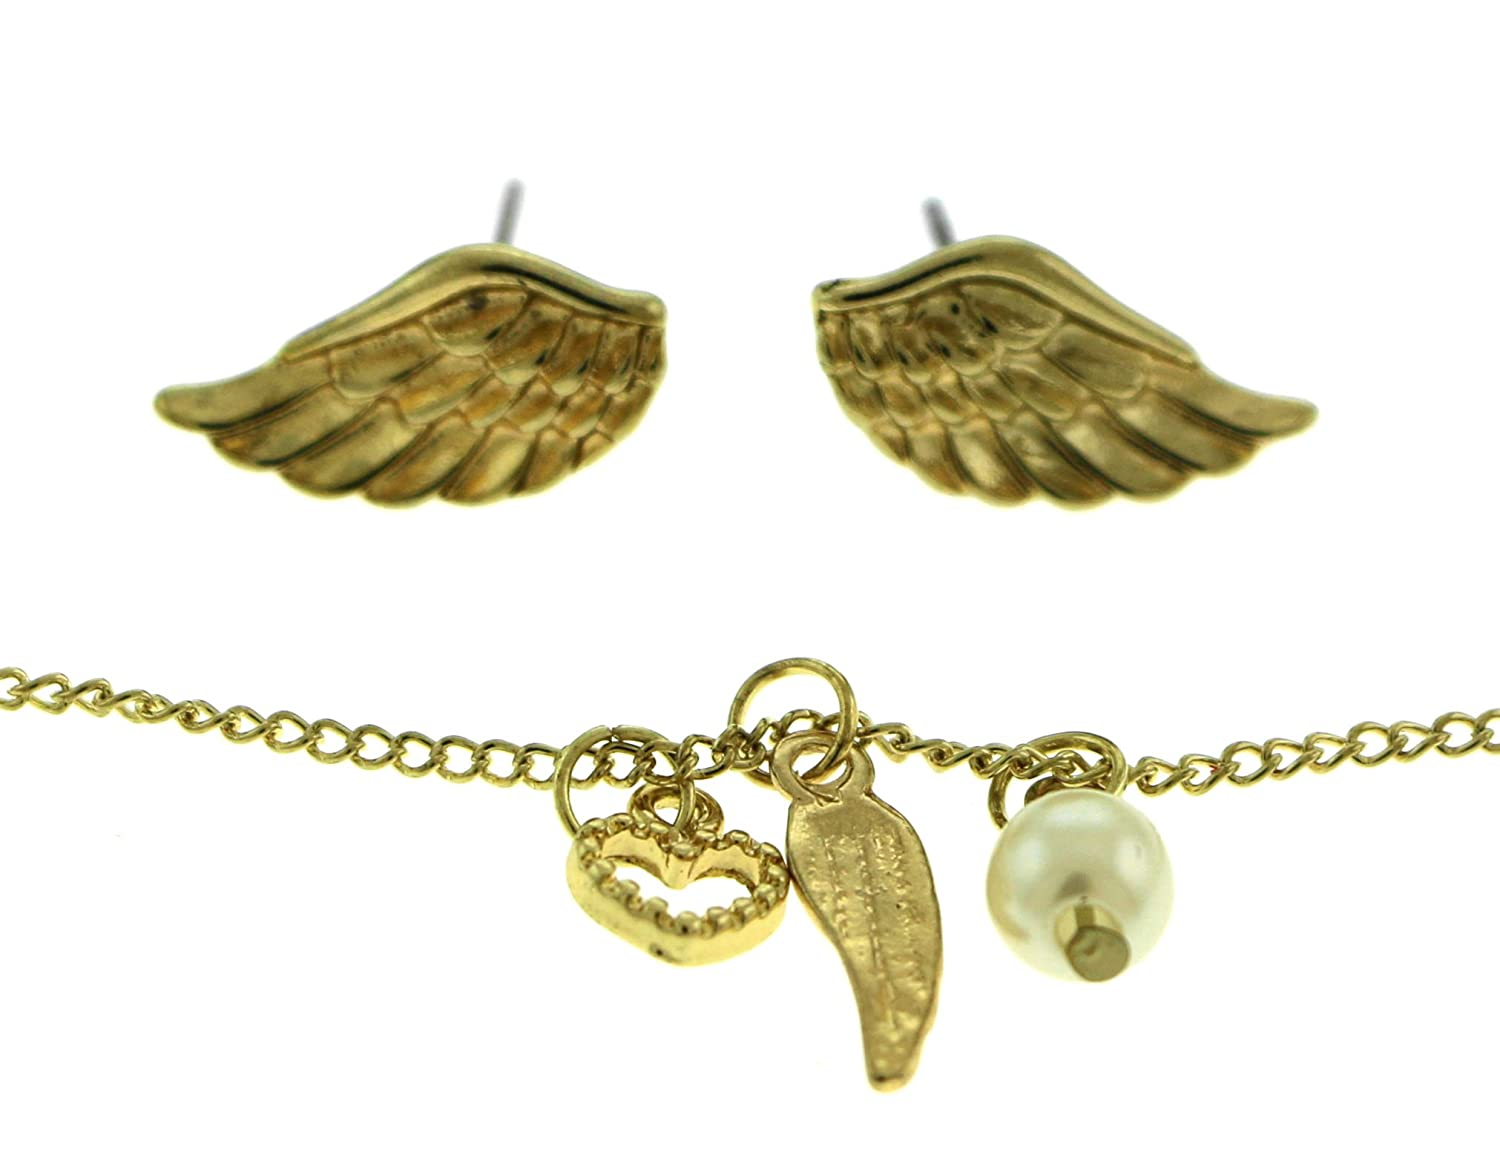 Gold-Tone Necklace And Earrings Set GRMT59